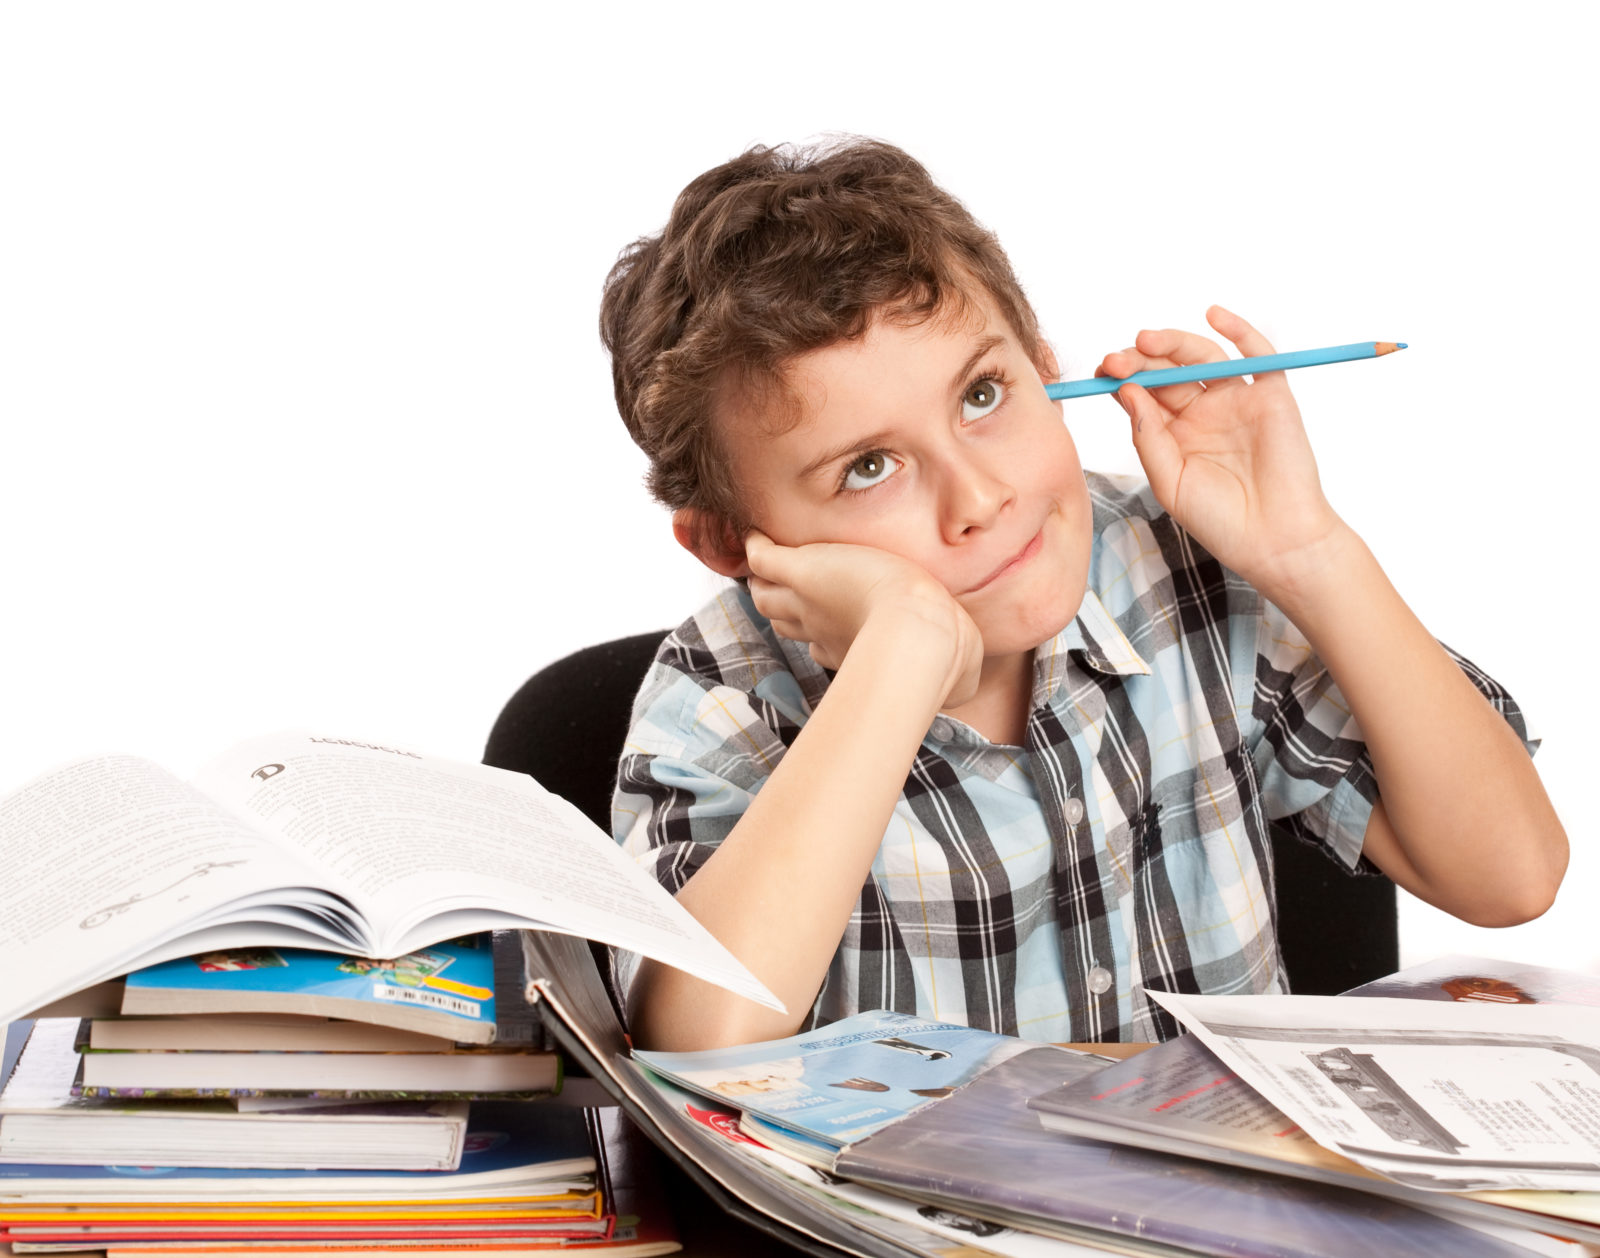 Information about ADHD from Butterfly Beginnings Counseling in Davenport, Iowa